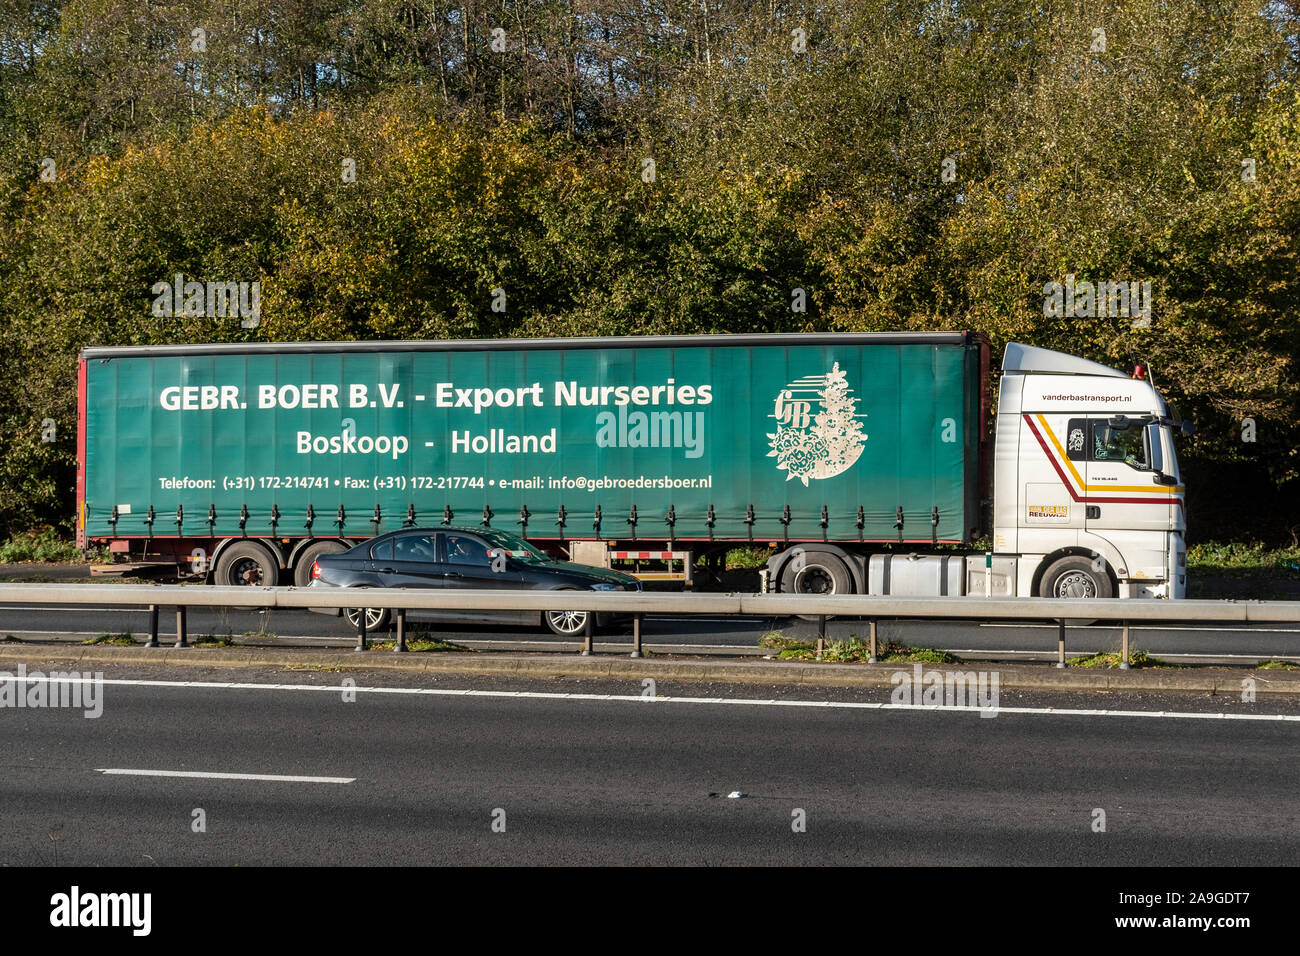 Gebr. Boer. B.V. Export Nurseries lorry or truck, from Holland, driving along a dual carriageway, UK Stock Photo